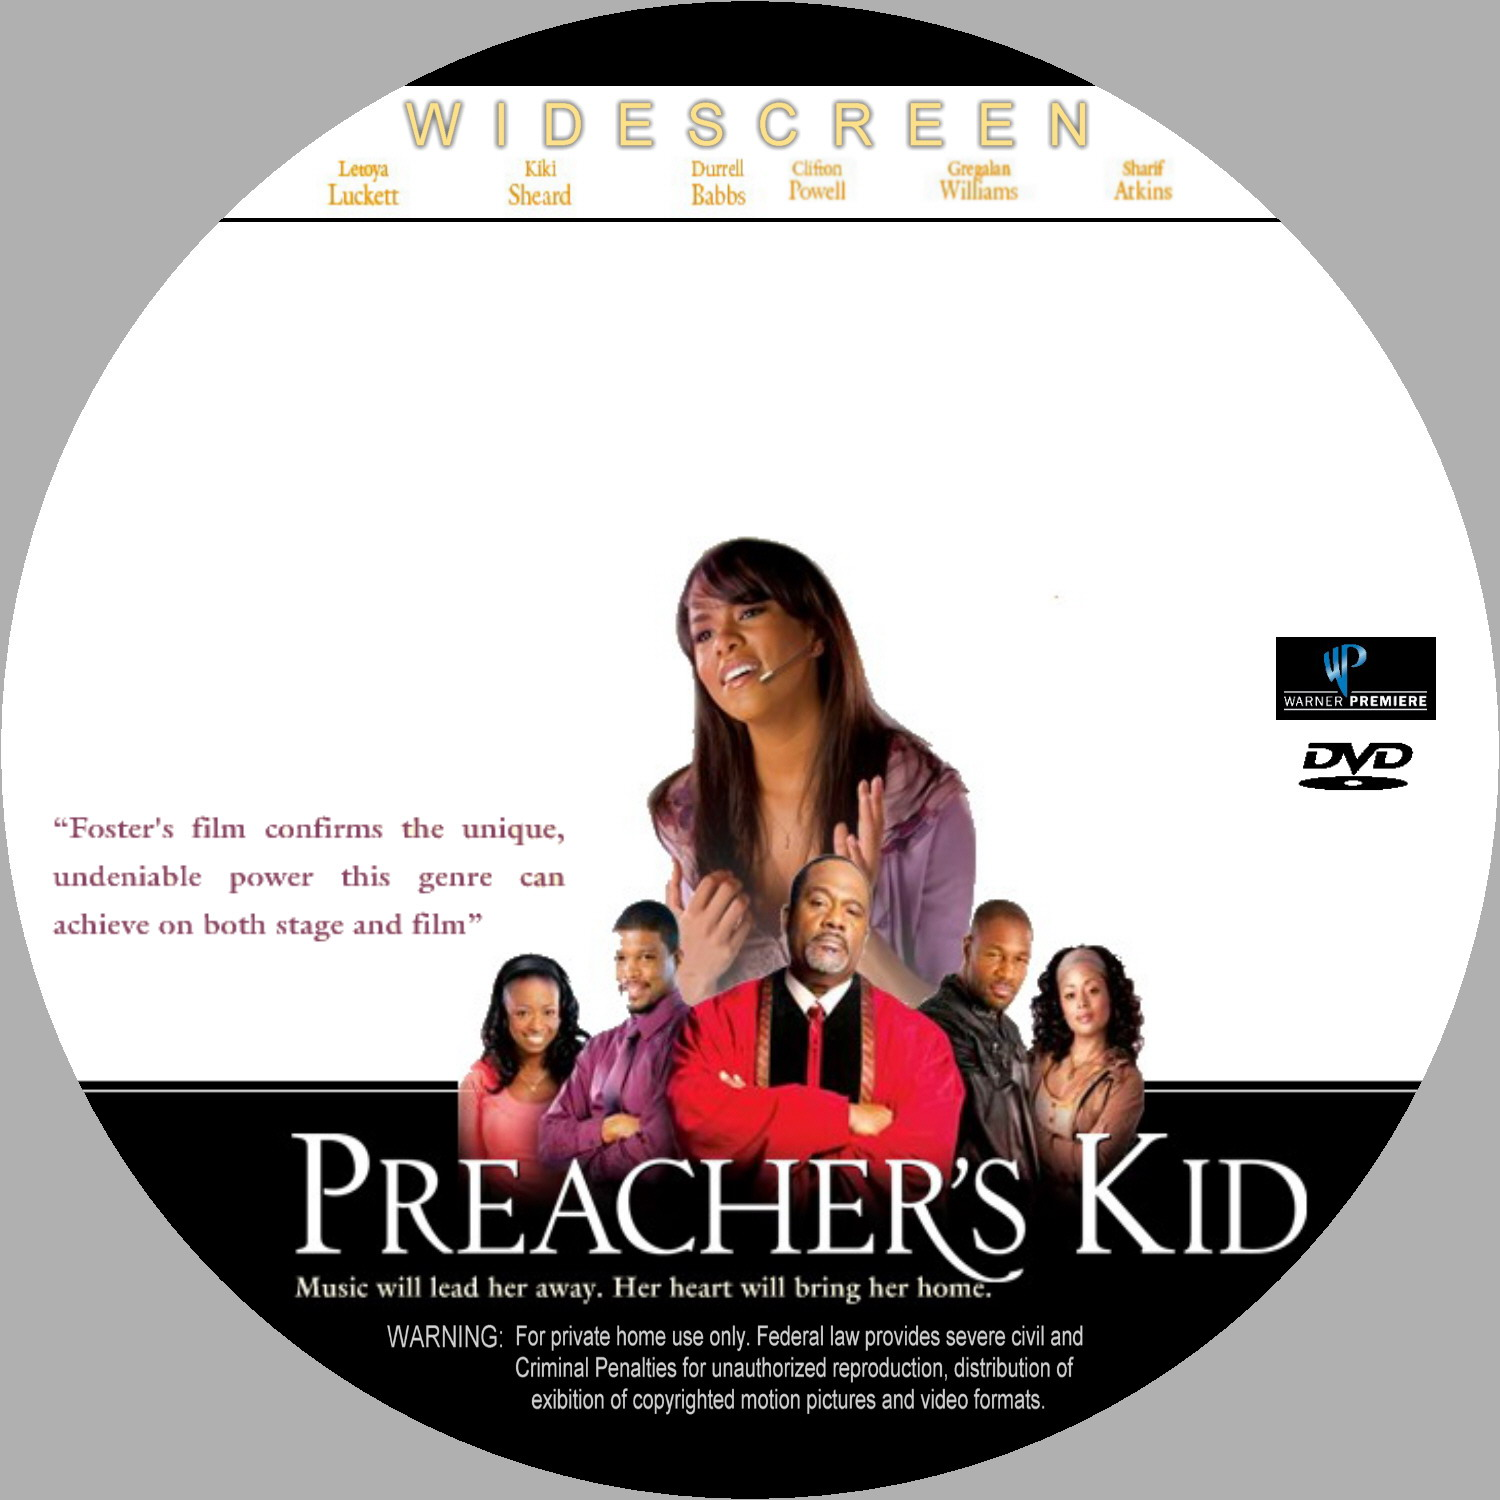 preachers kid movie download